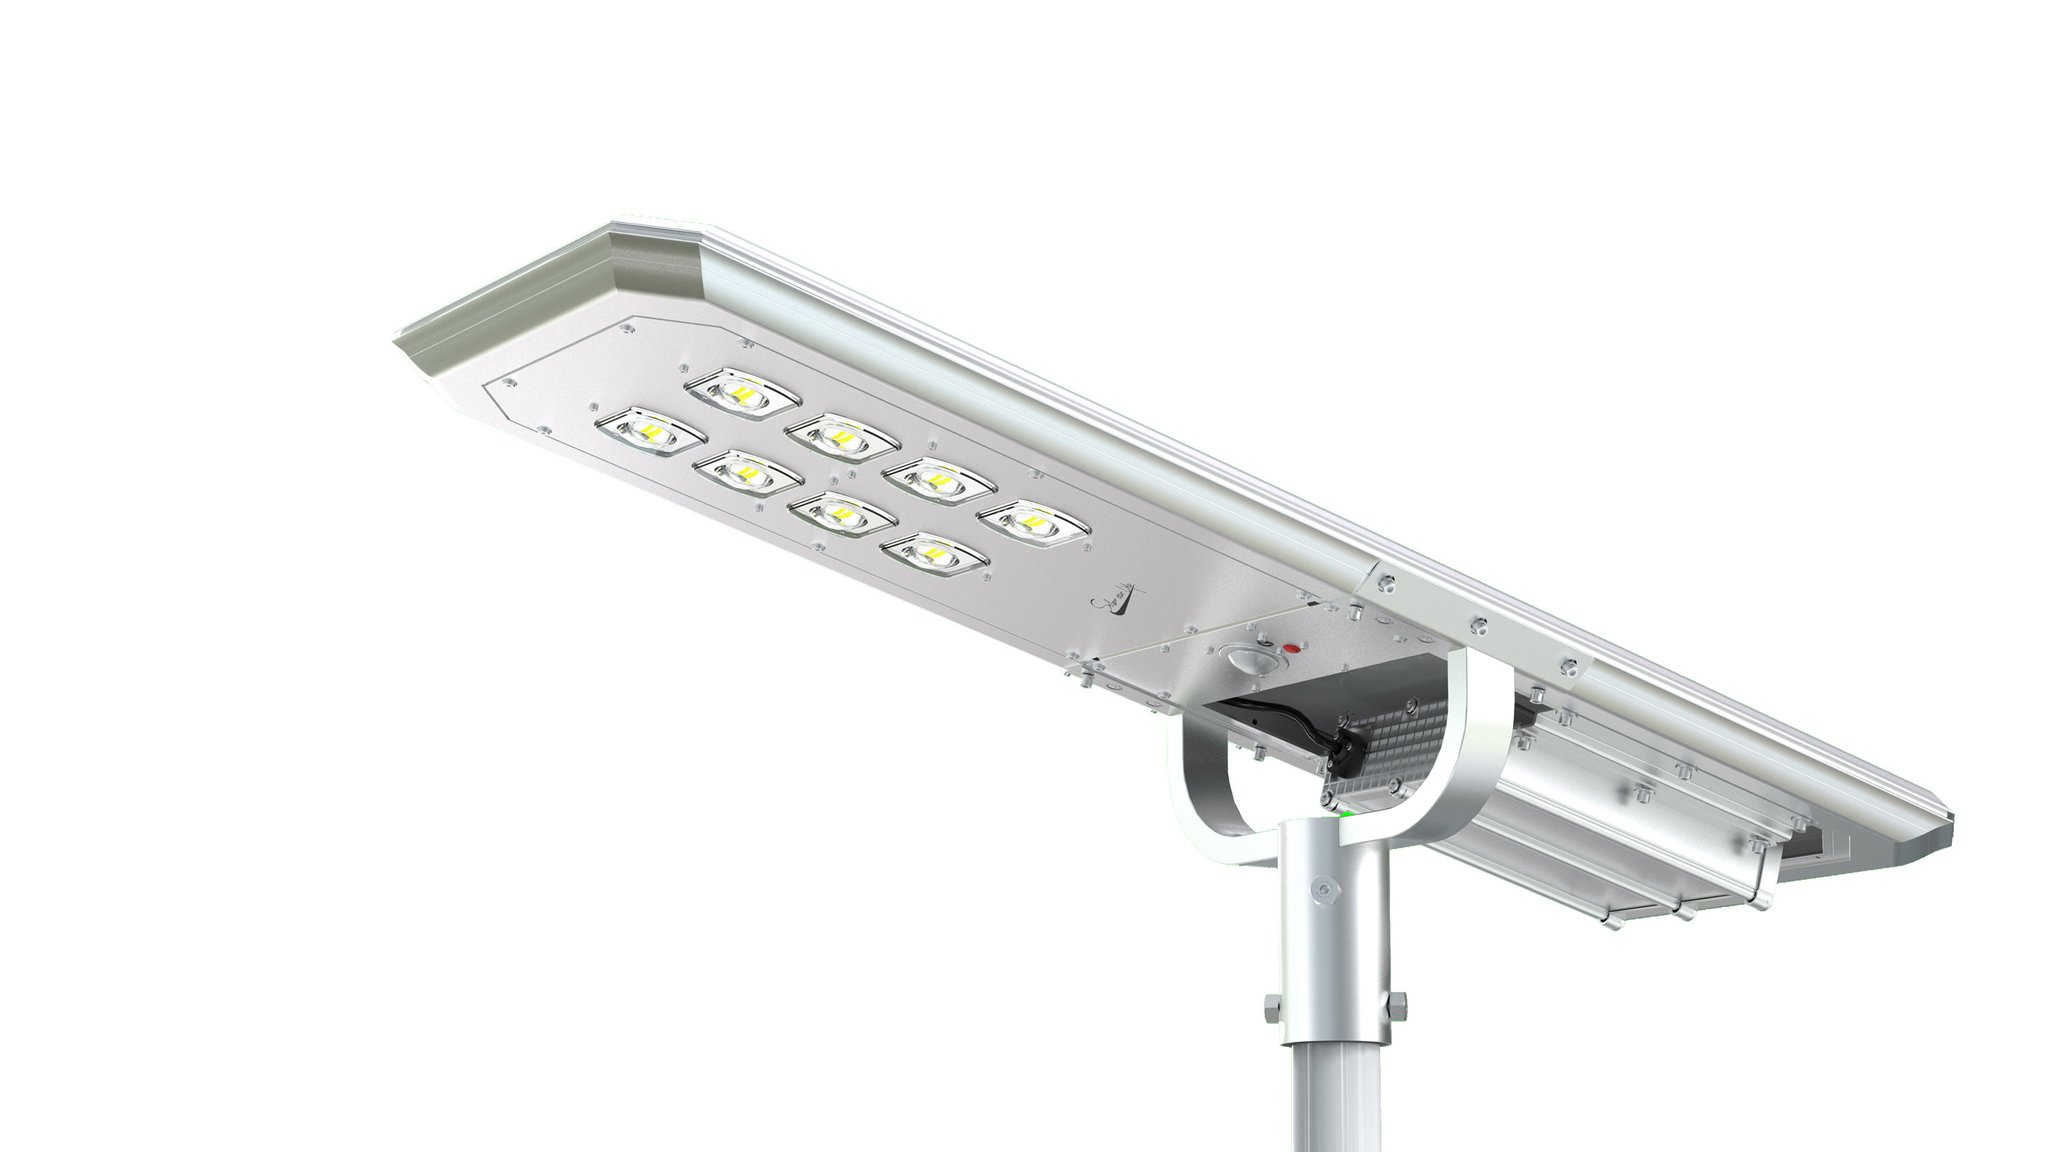 6000 LUMEN SOLAR POWERED LED LIGHT FIXTURE